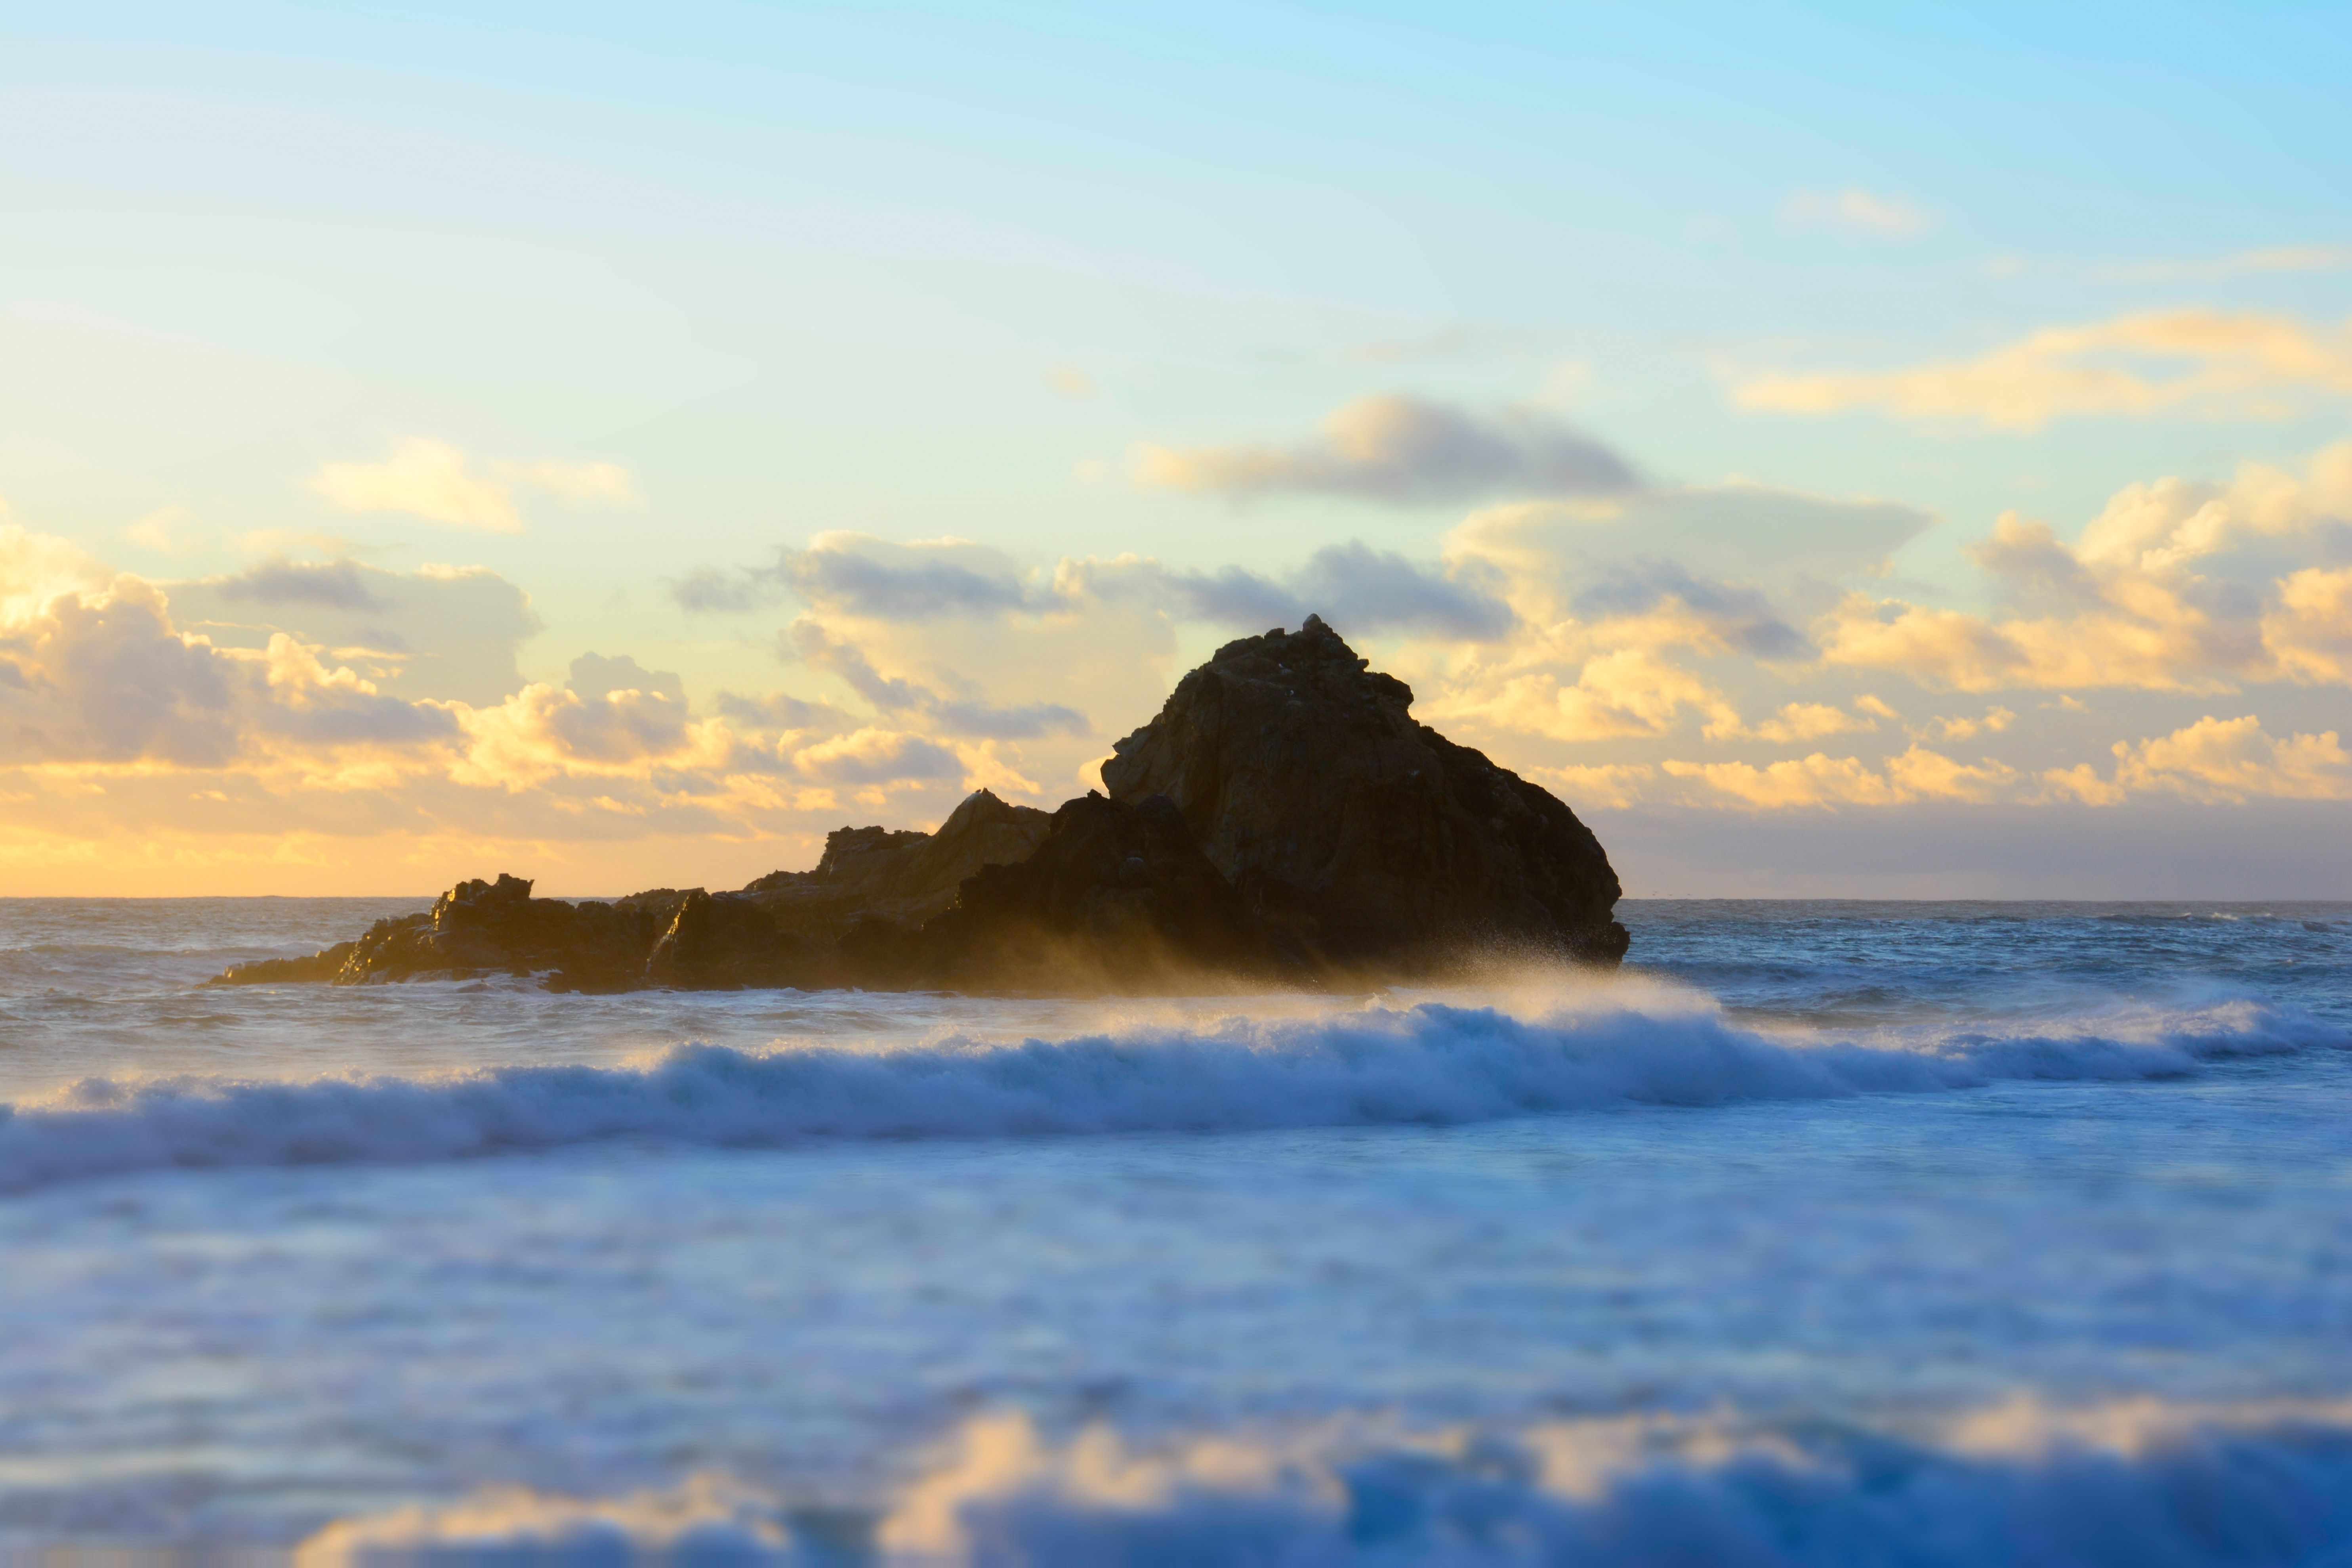 Waves around the ocean rock during sunset at Pfeiffer Beach